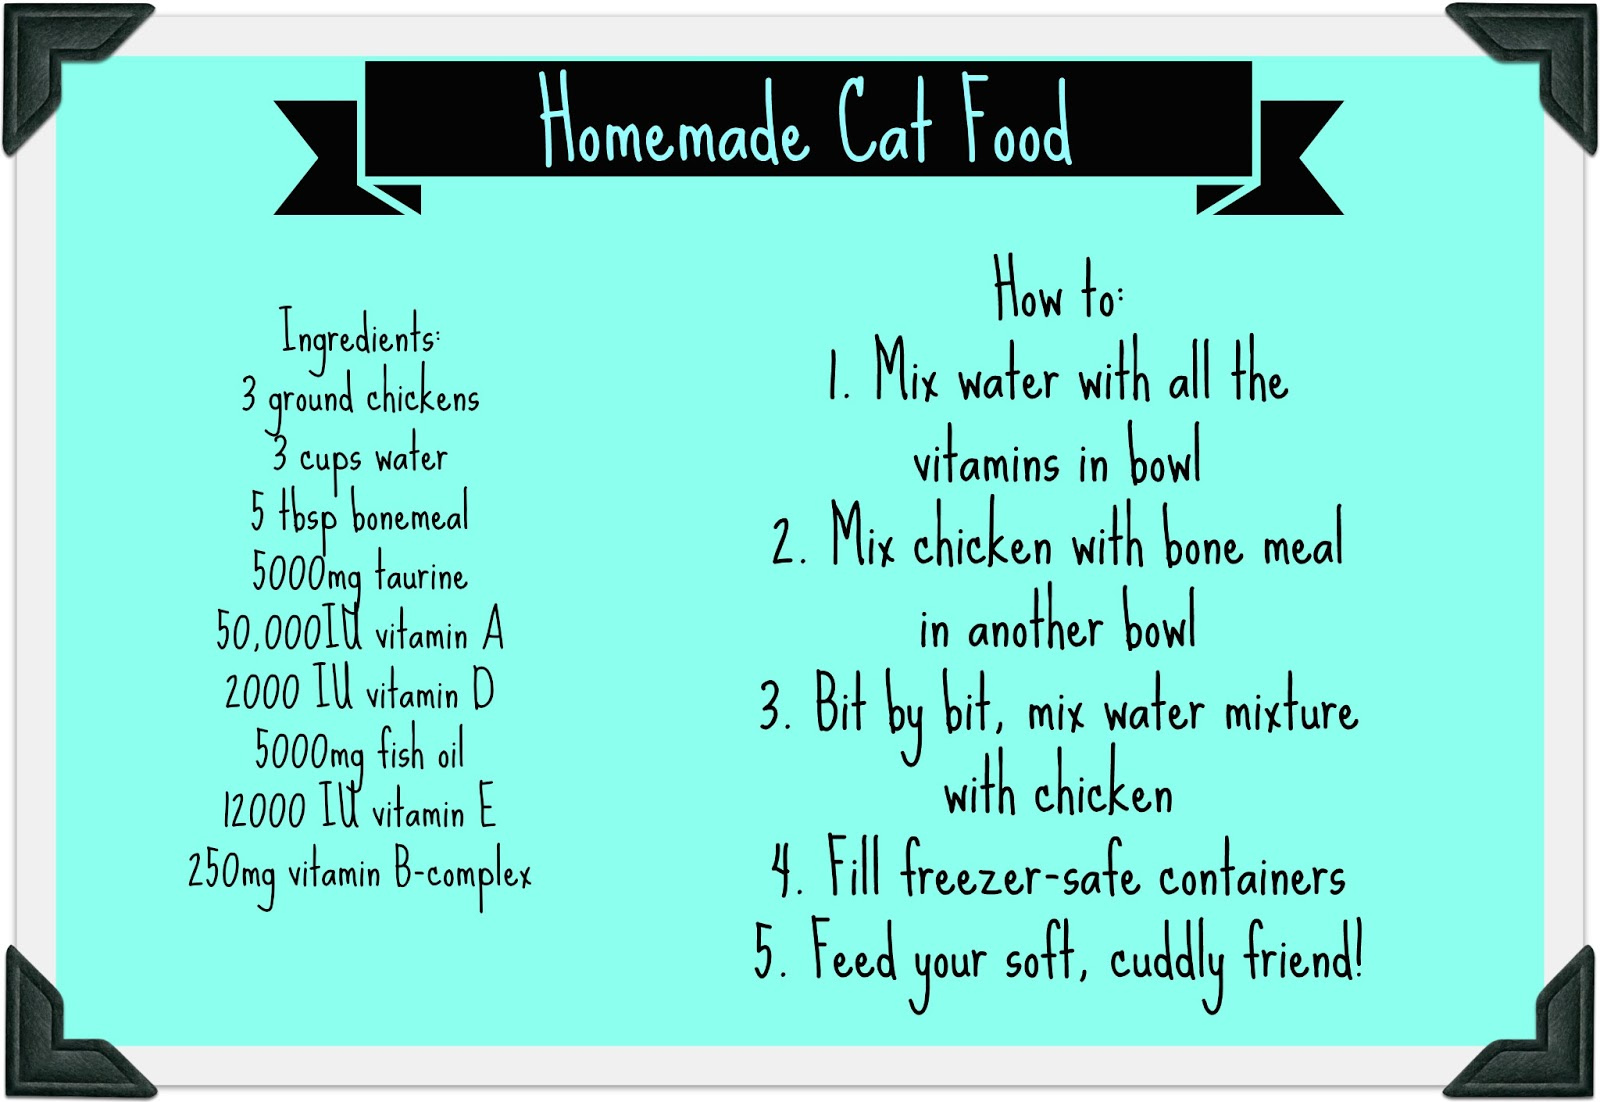 Food recipe homemade cat food recipe images of homemade cat food recipe forumfinder Gallery